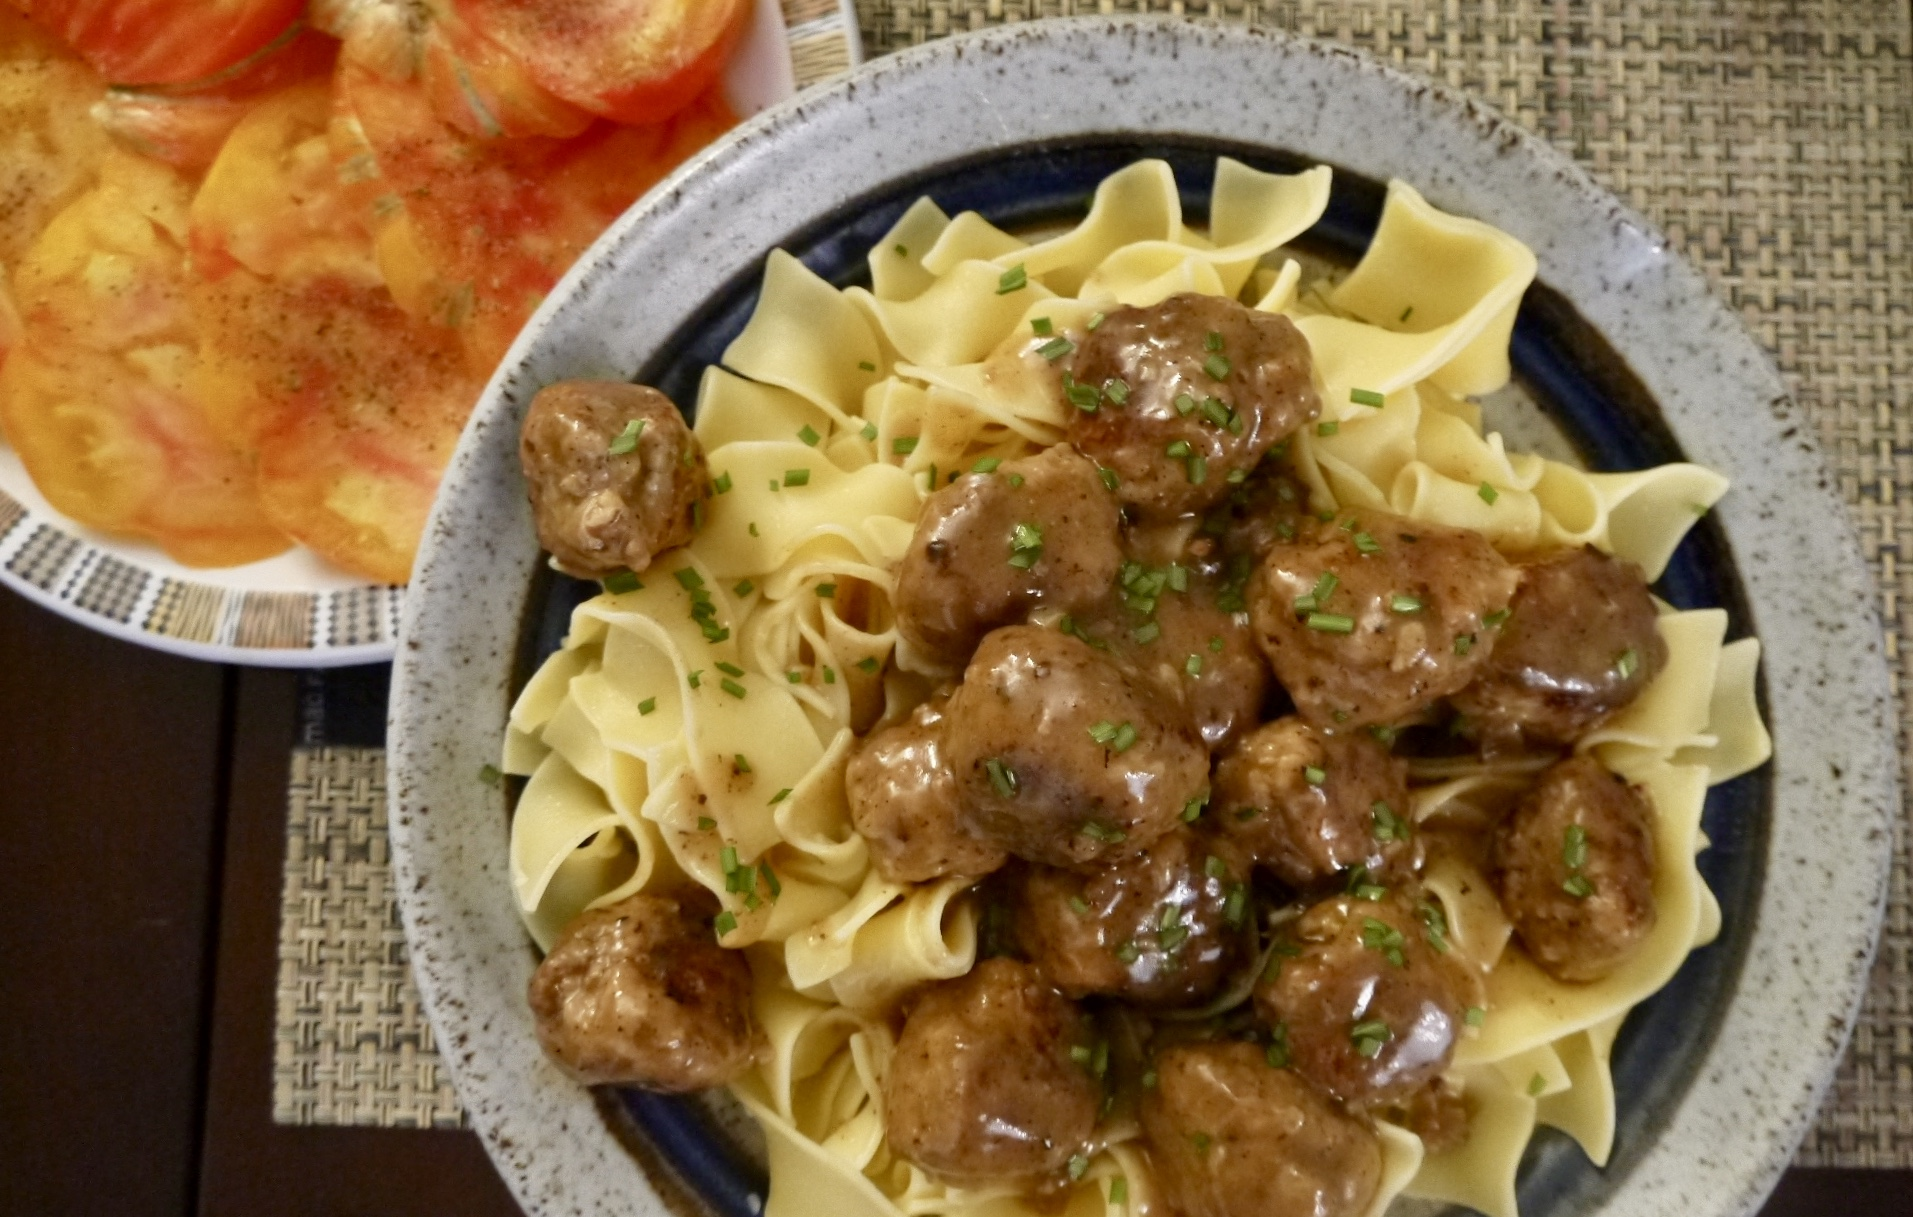 turkey meatballs marsala with egg noodles - trustinkim